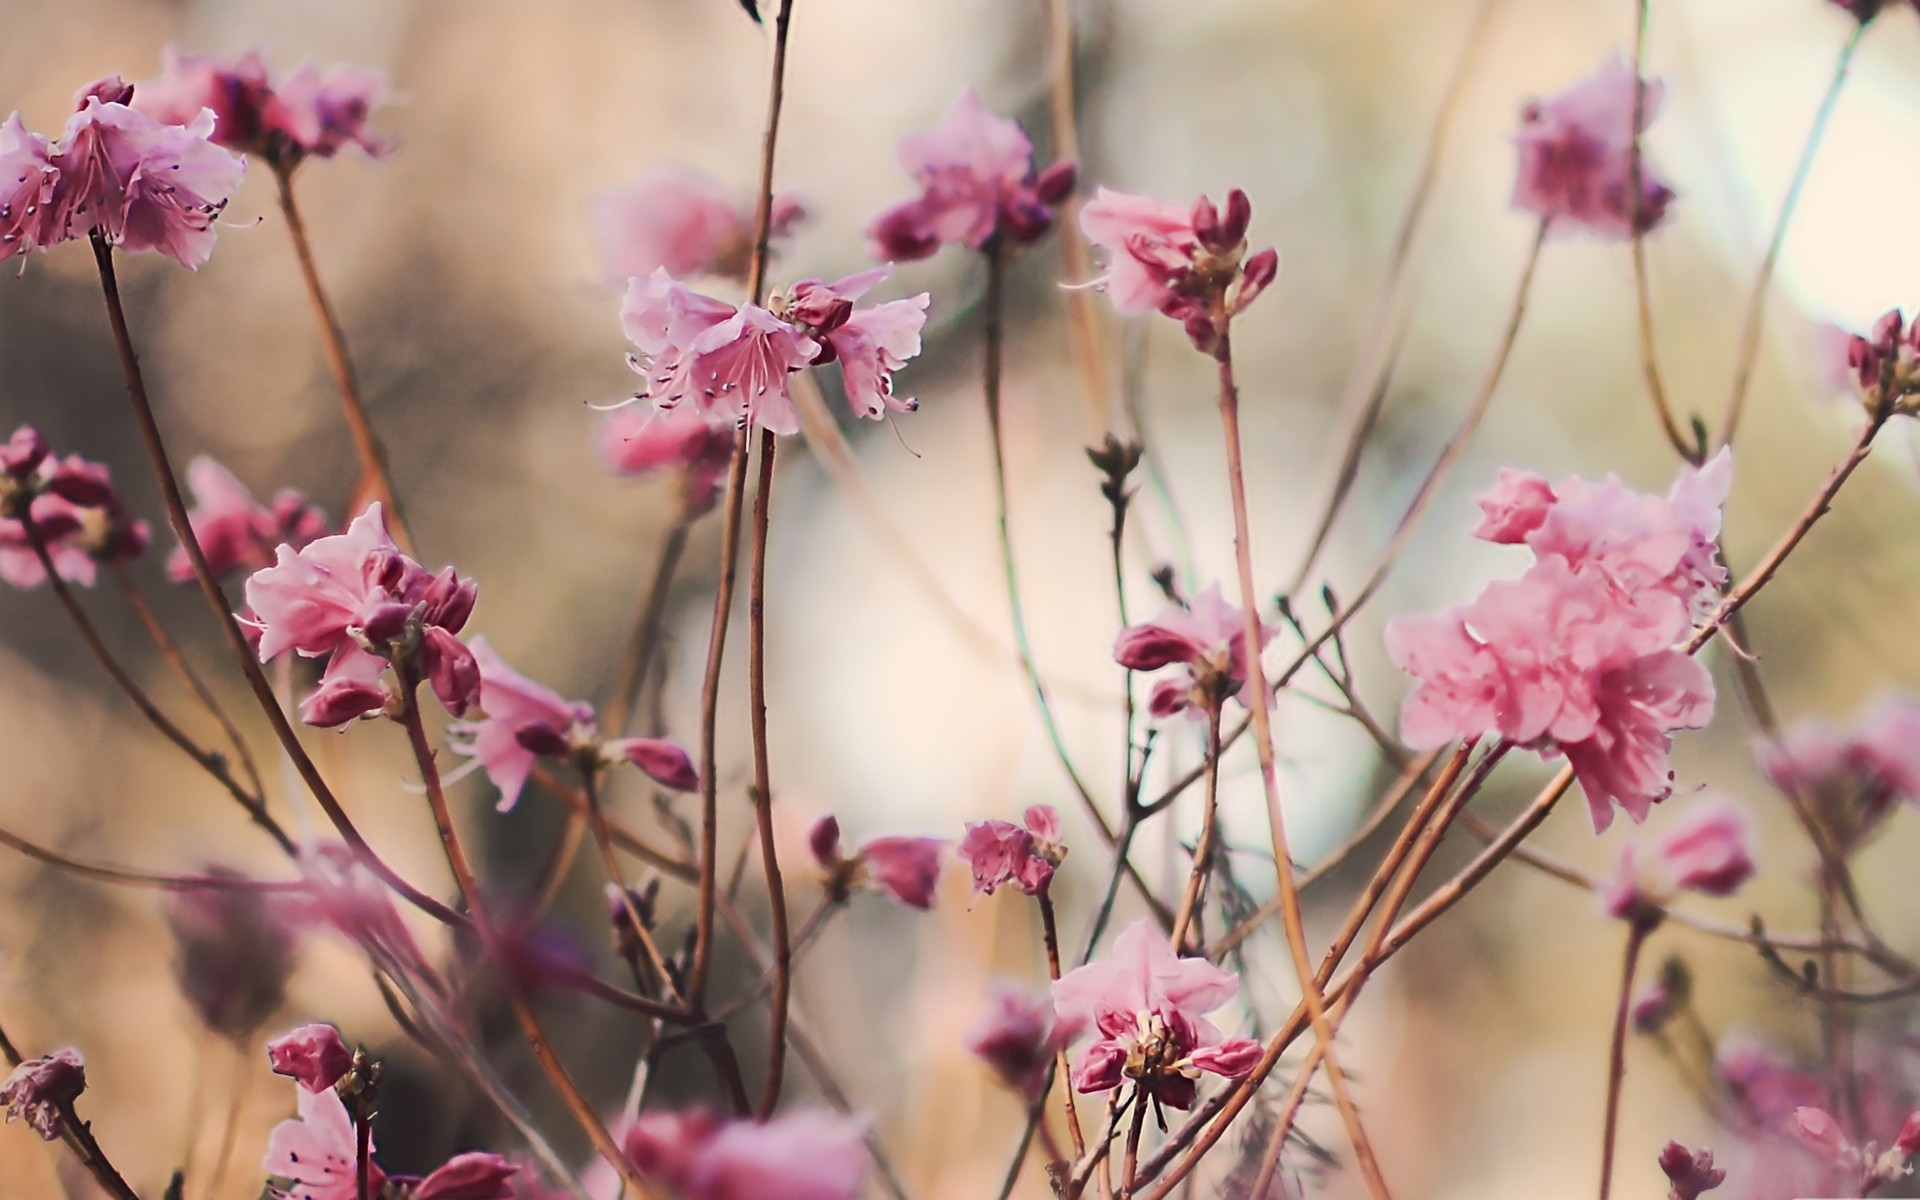 nature Flowers spring blossoms HD Wallpaper